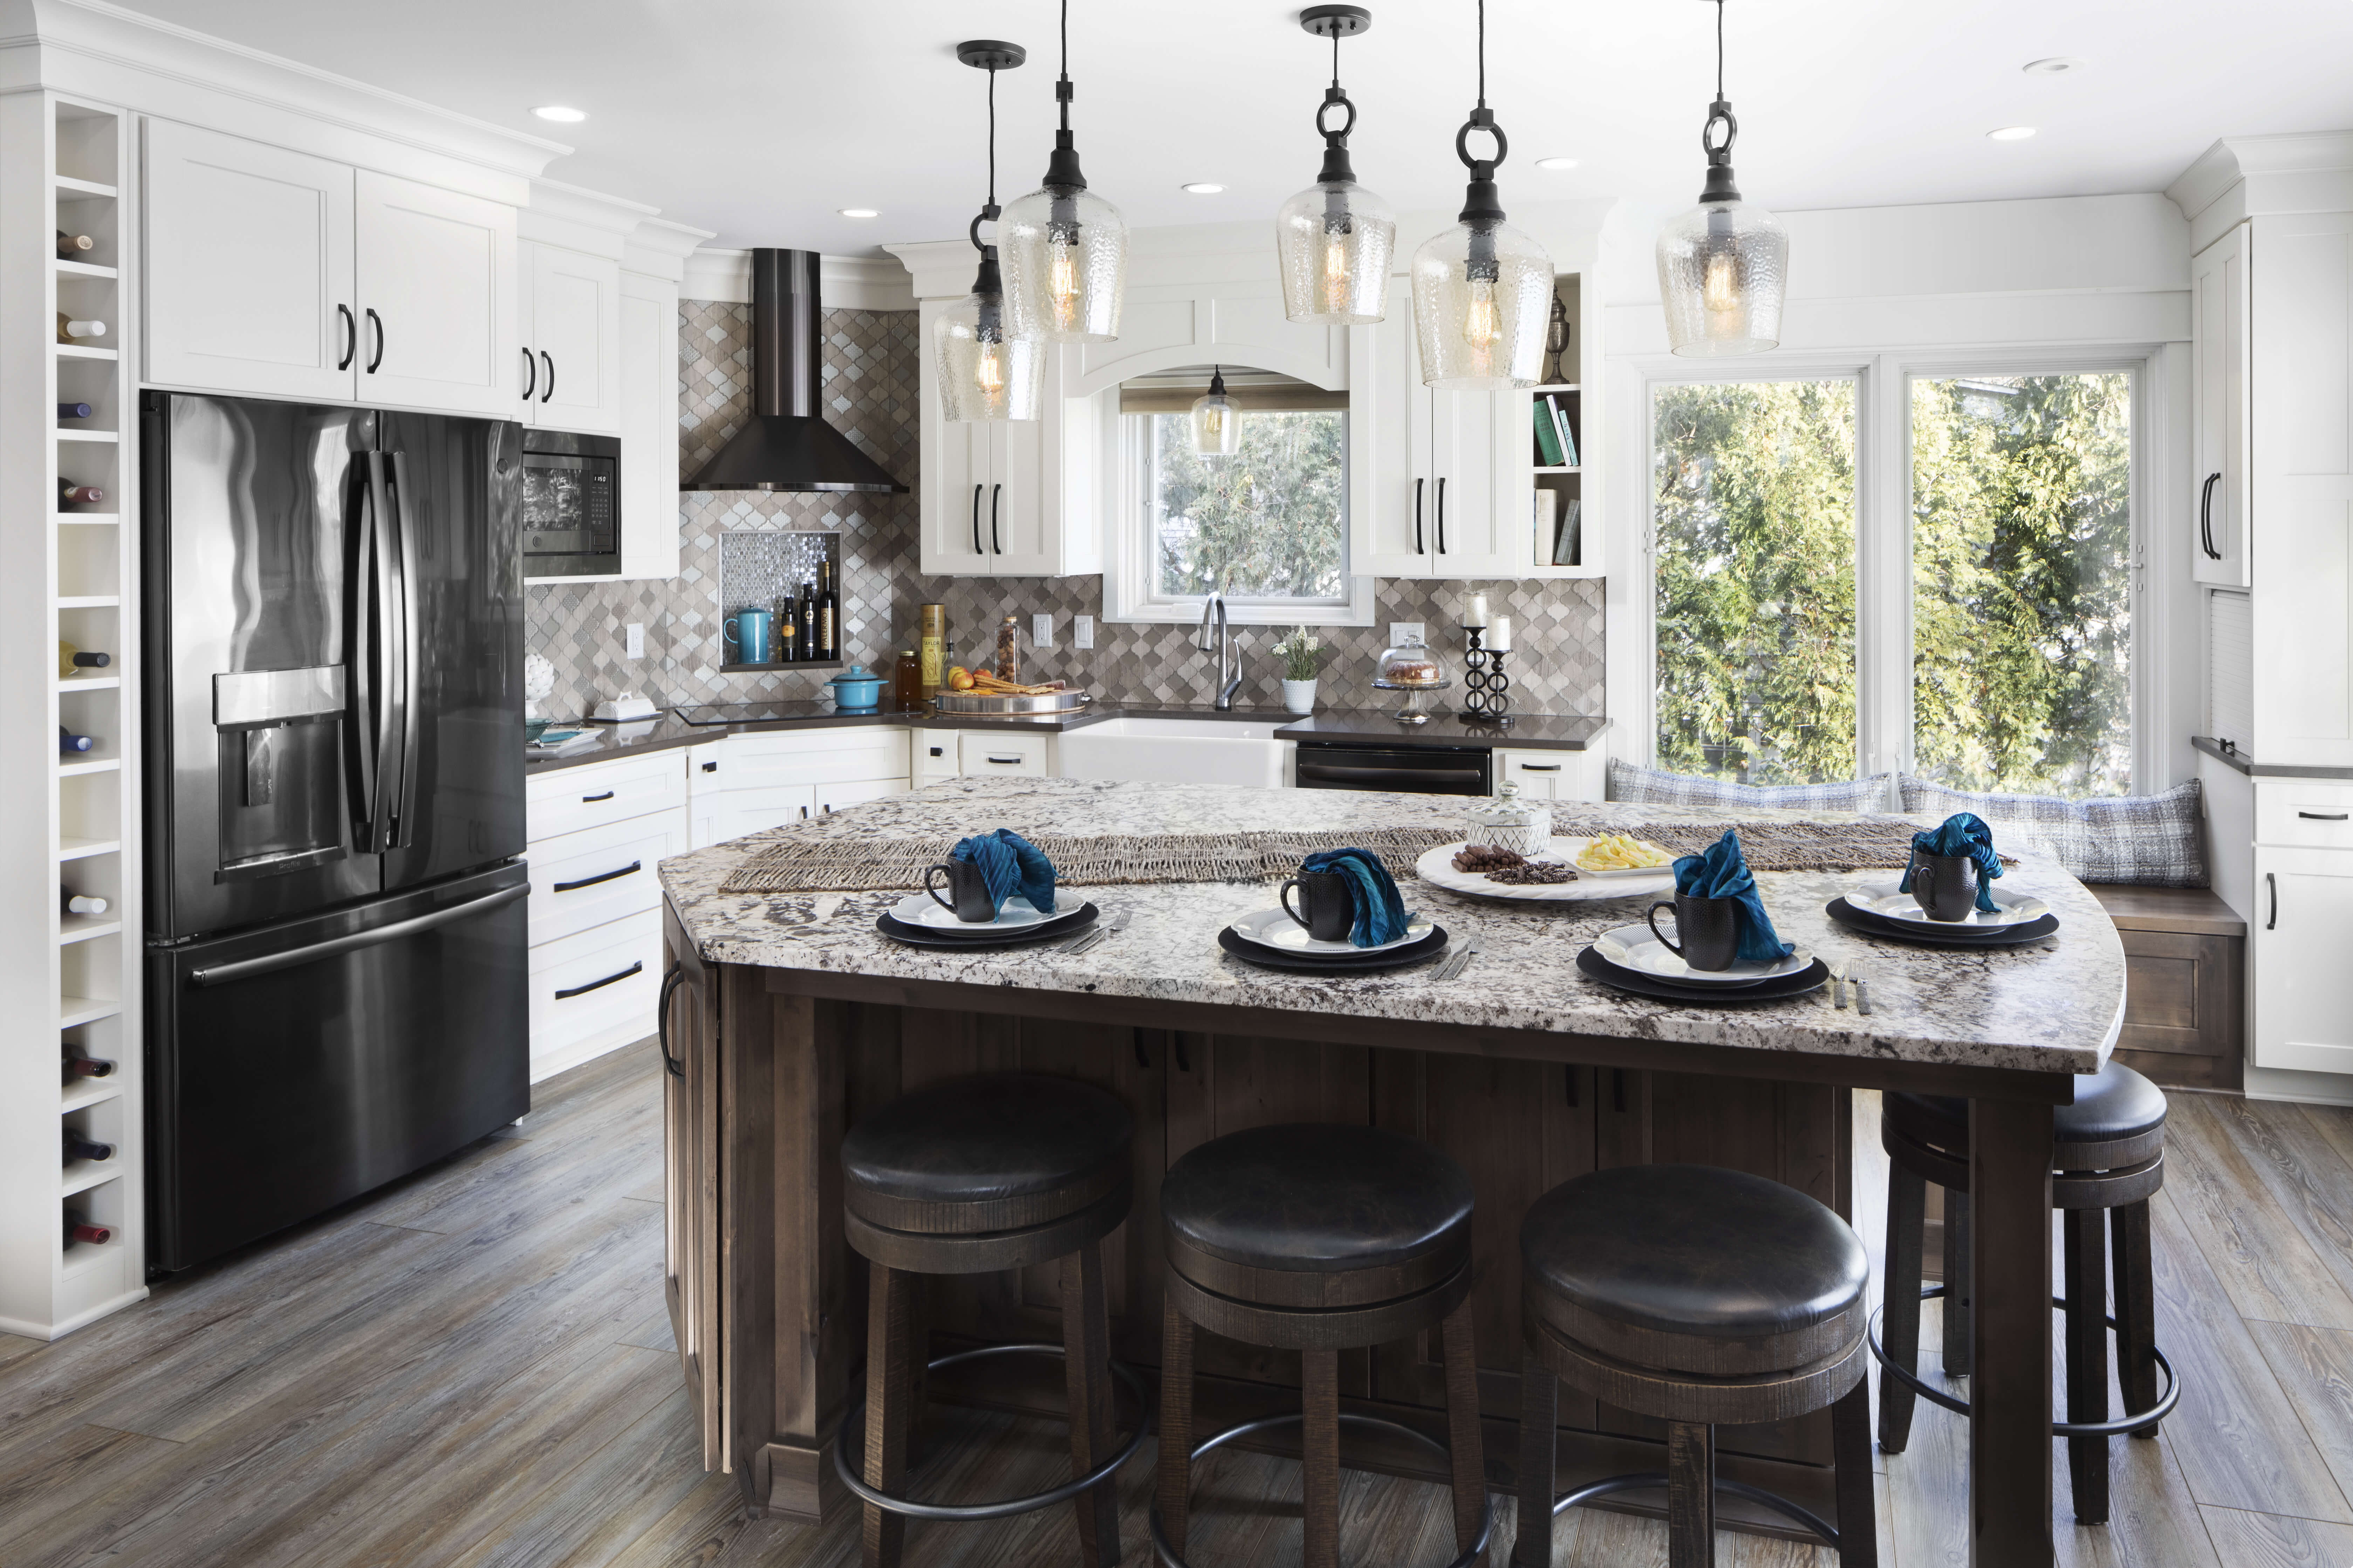 A beautiful lake house kitchen with a modern and casual style. The kitchen has white painted cabinets and a gray stained kitchen island with Knotty Alder wood, a boot bench window seat and lots of personalization.